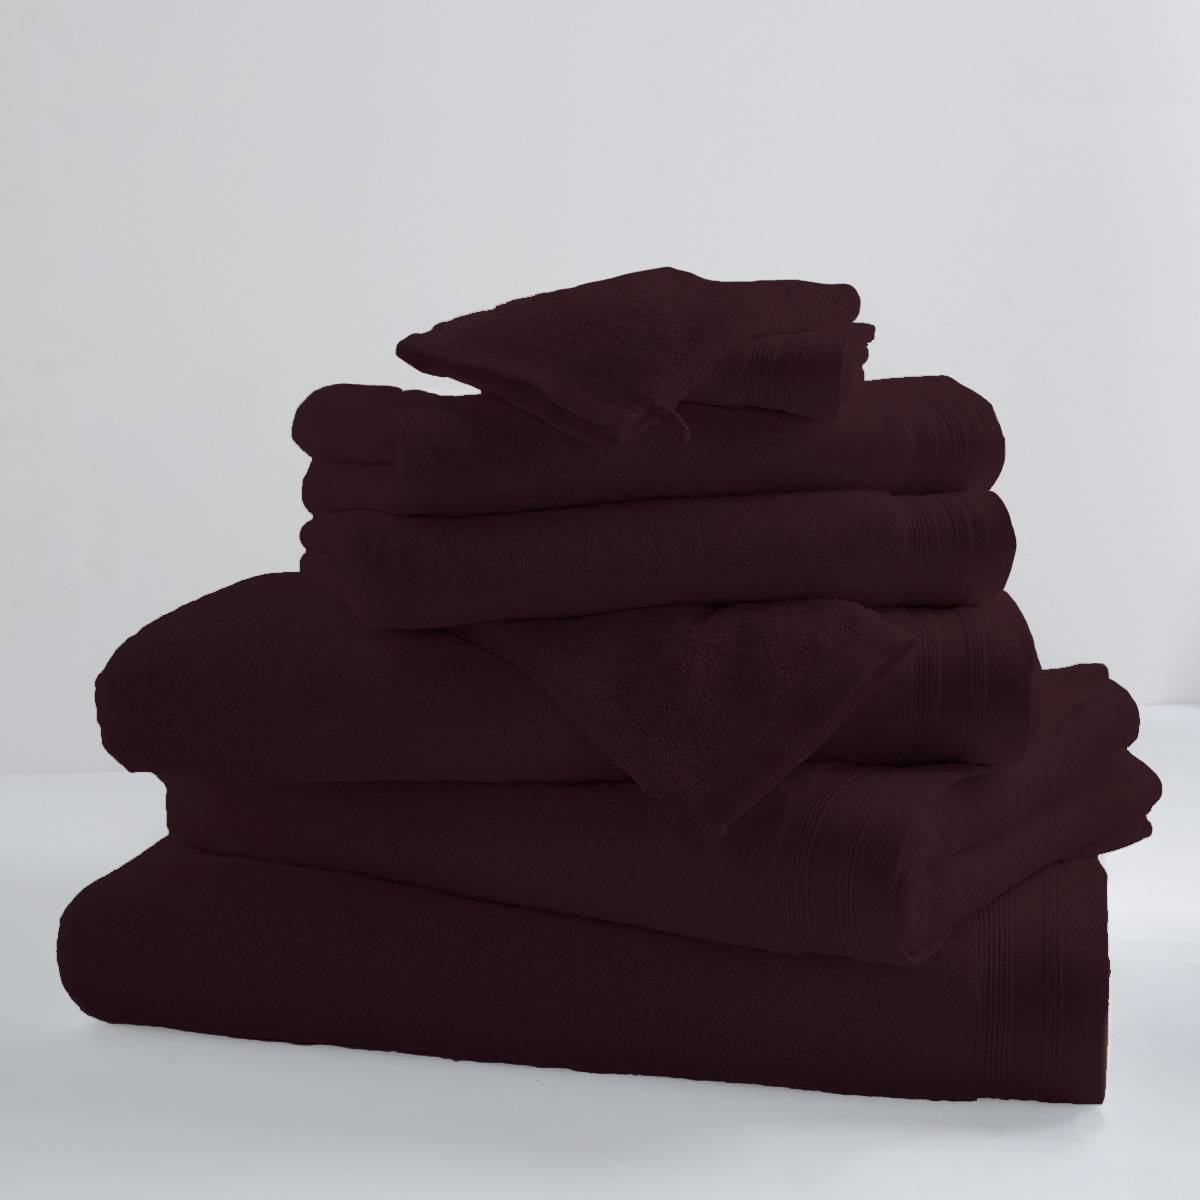 Home Bain Lot de 2 serviettes de toilette unies et colorées coton cacao 100x50